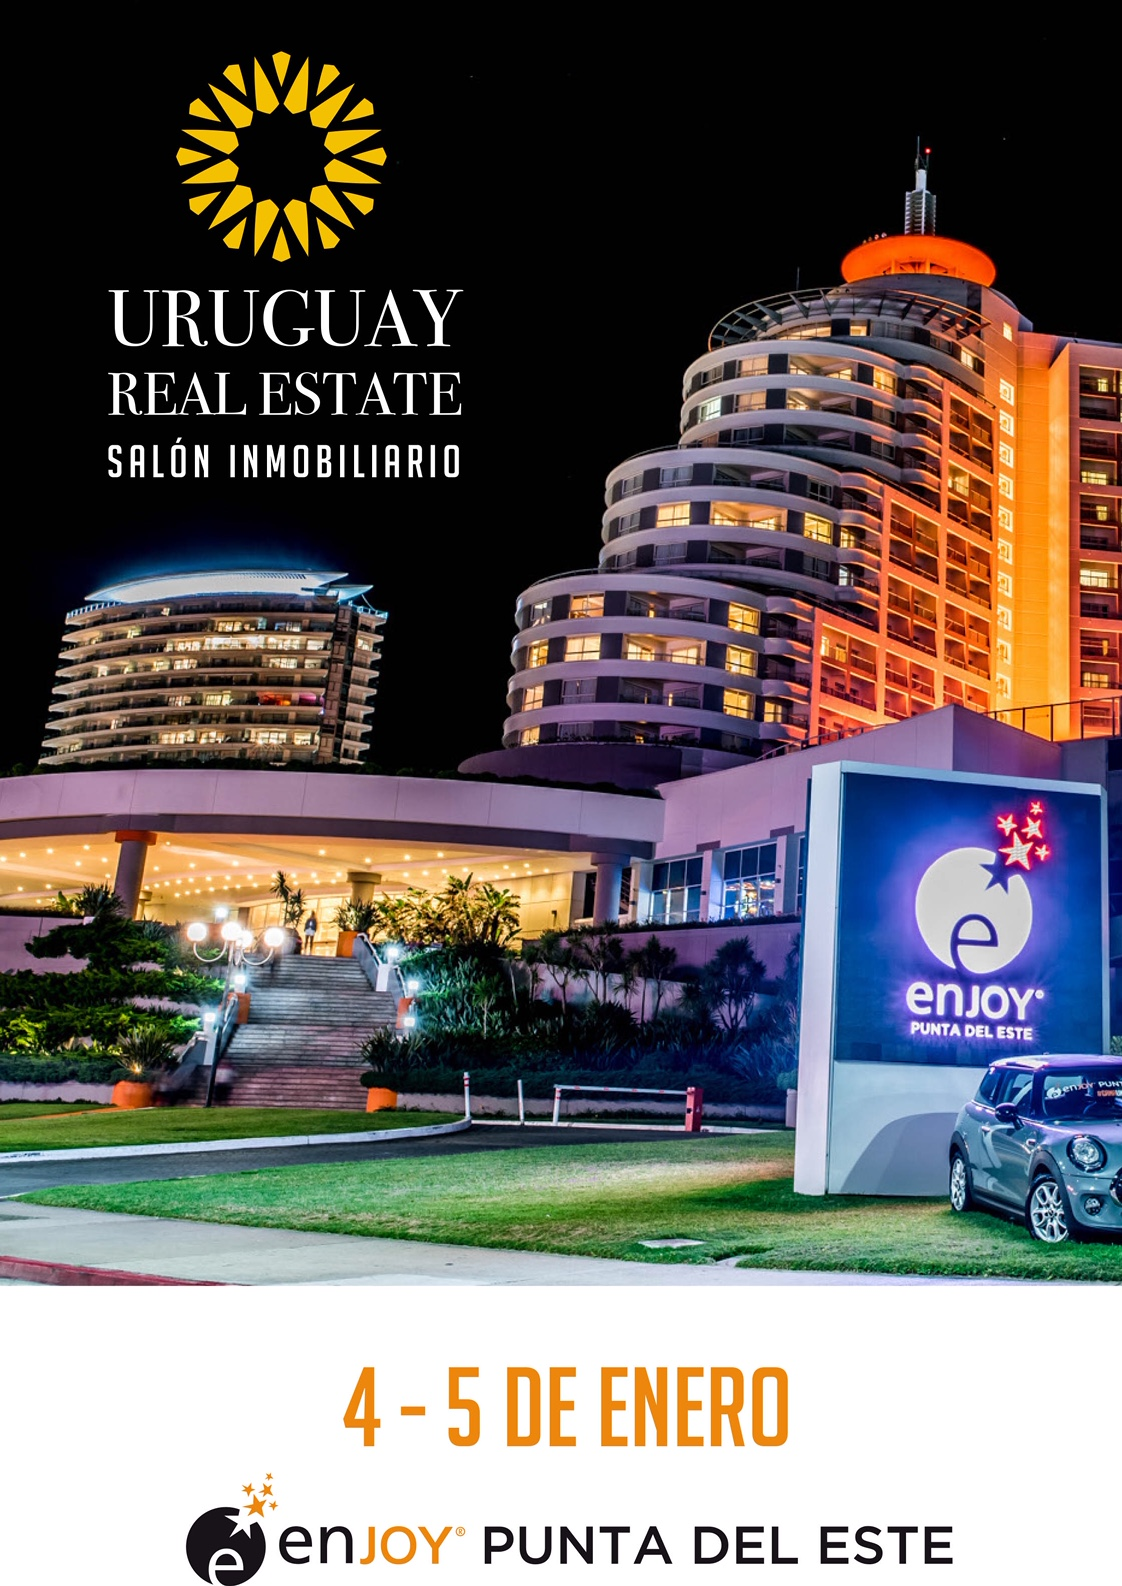 Uruguay Real State 2019